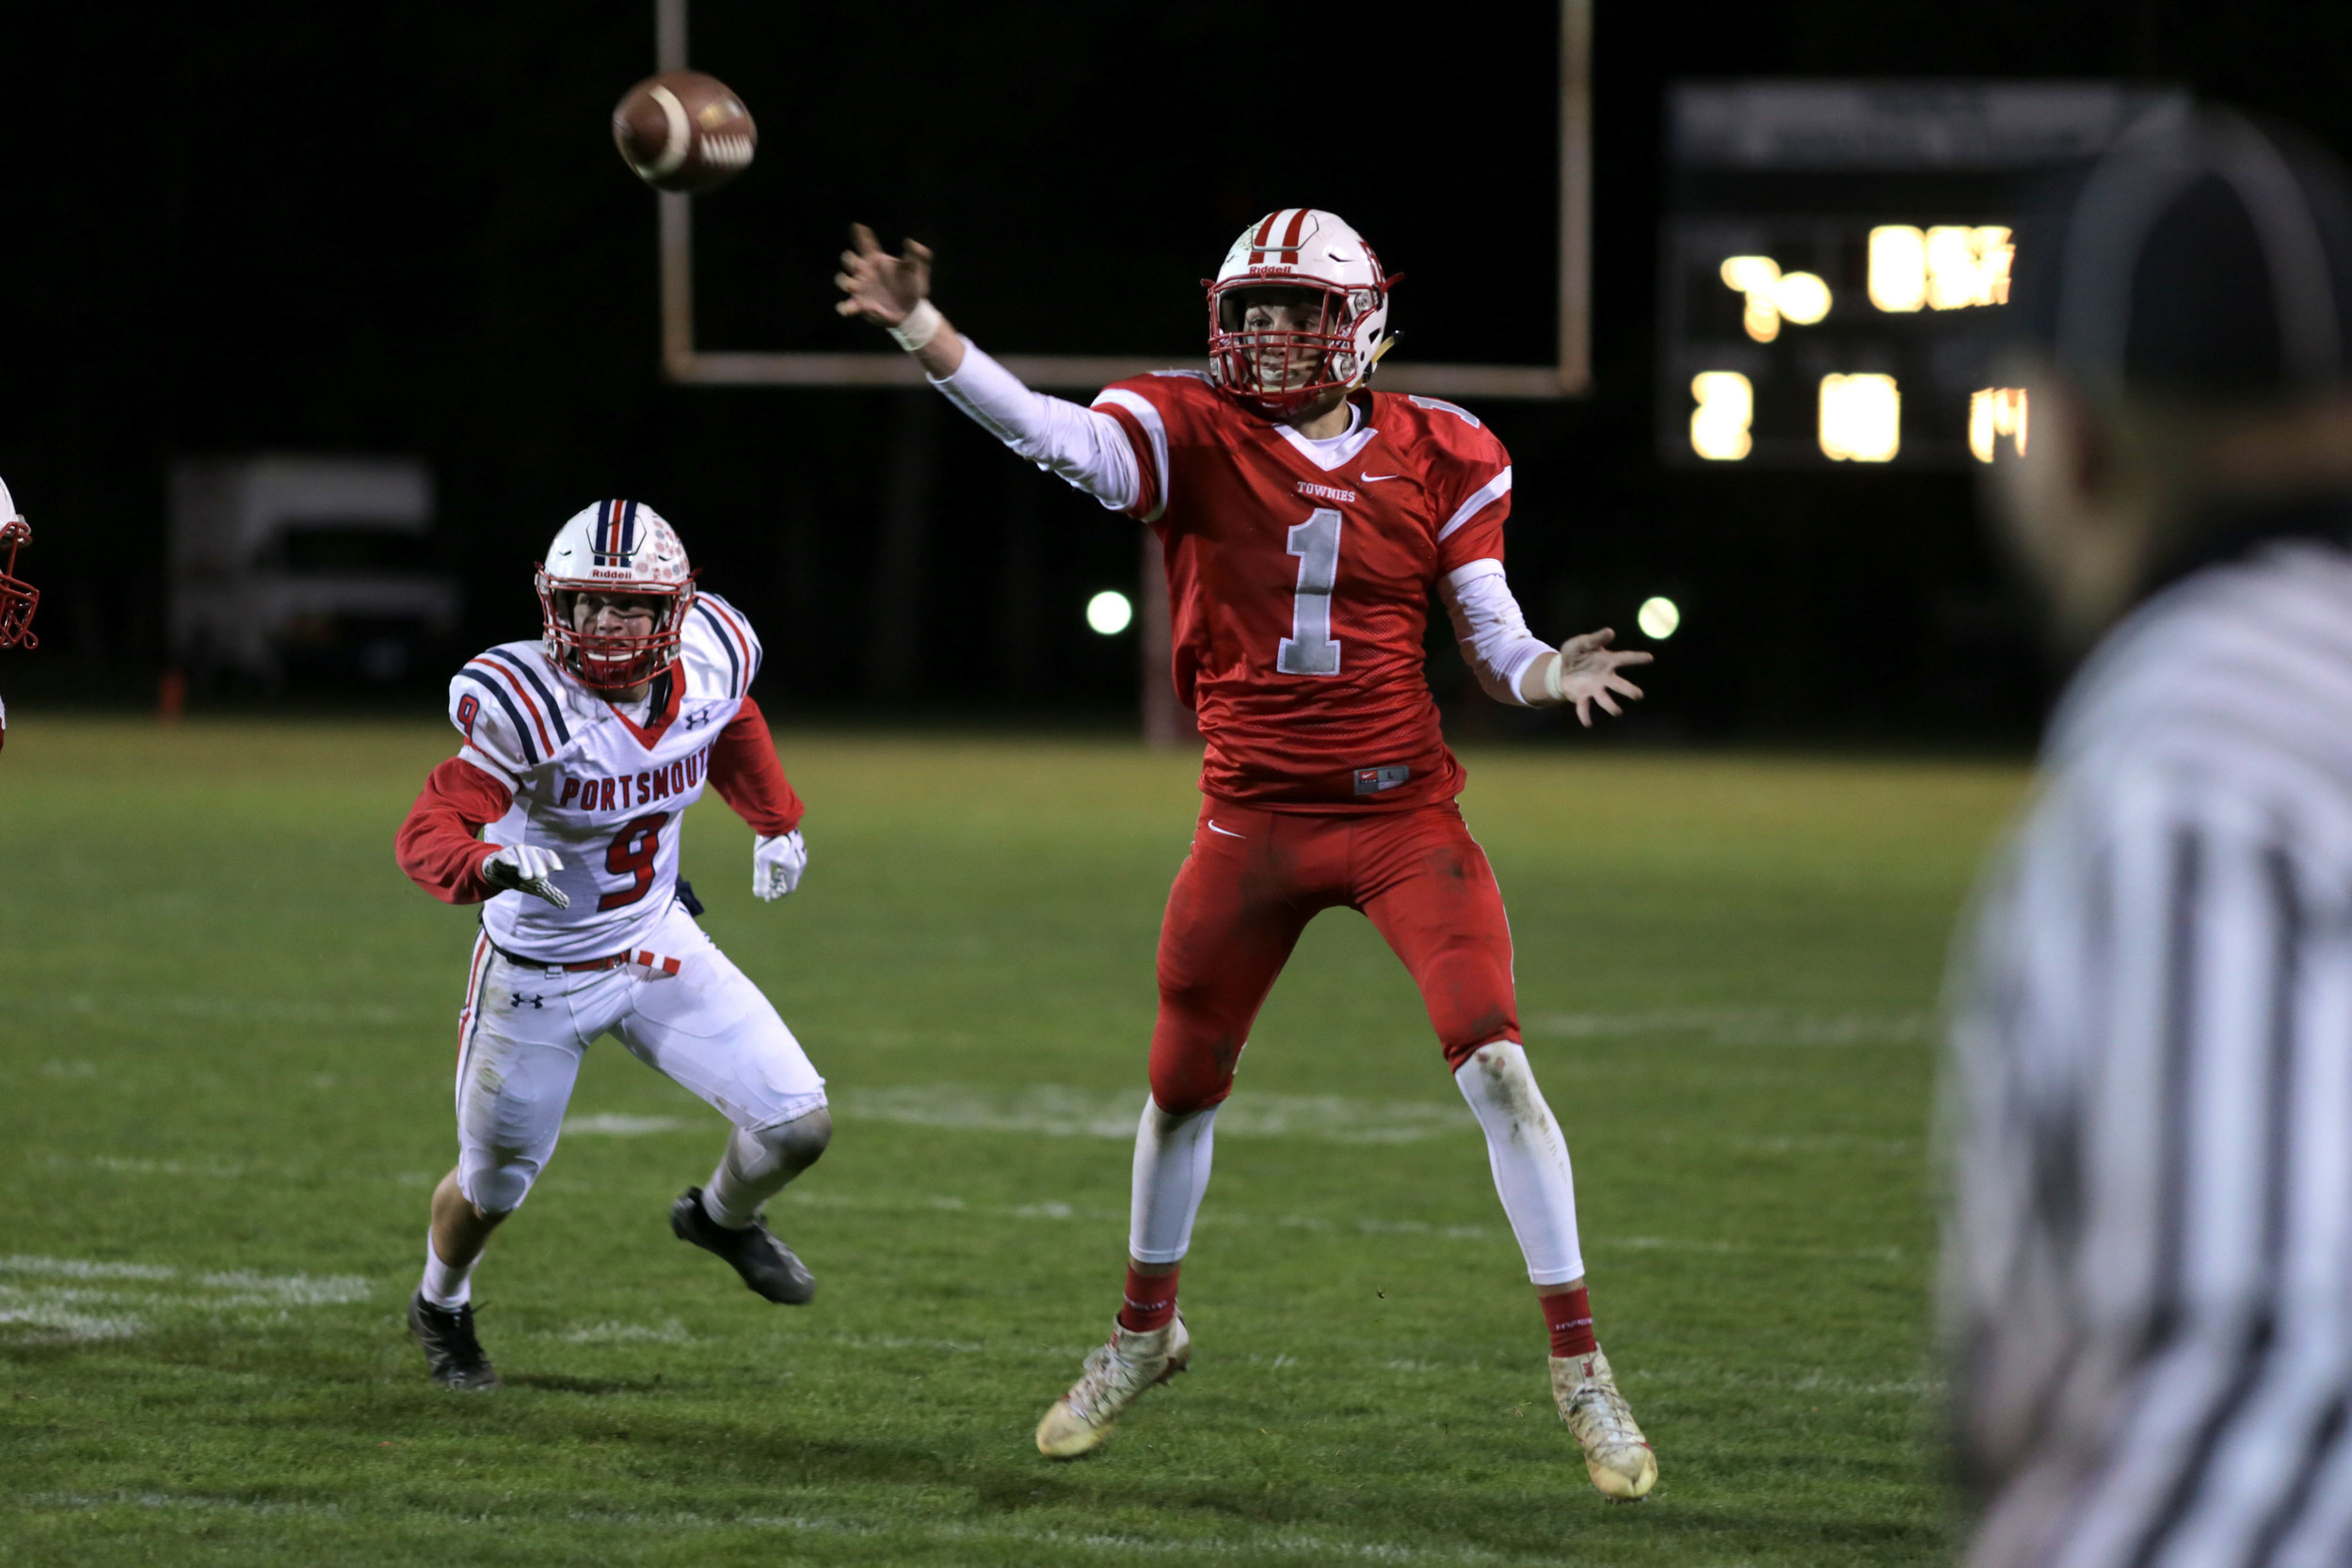 Senior Quarterback Ryan Ellinwood throws to an open receiver after scrambling away from the Portsmouth defense.